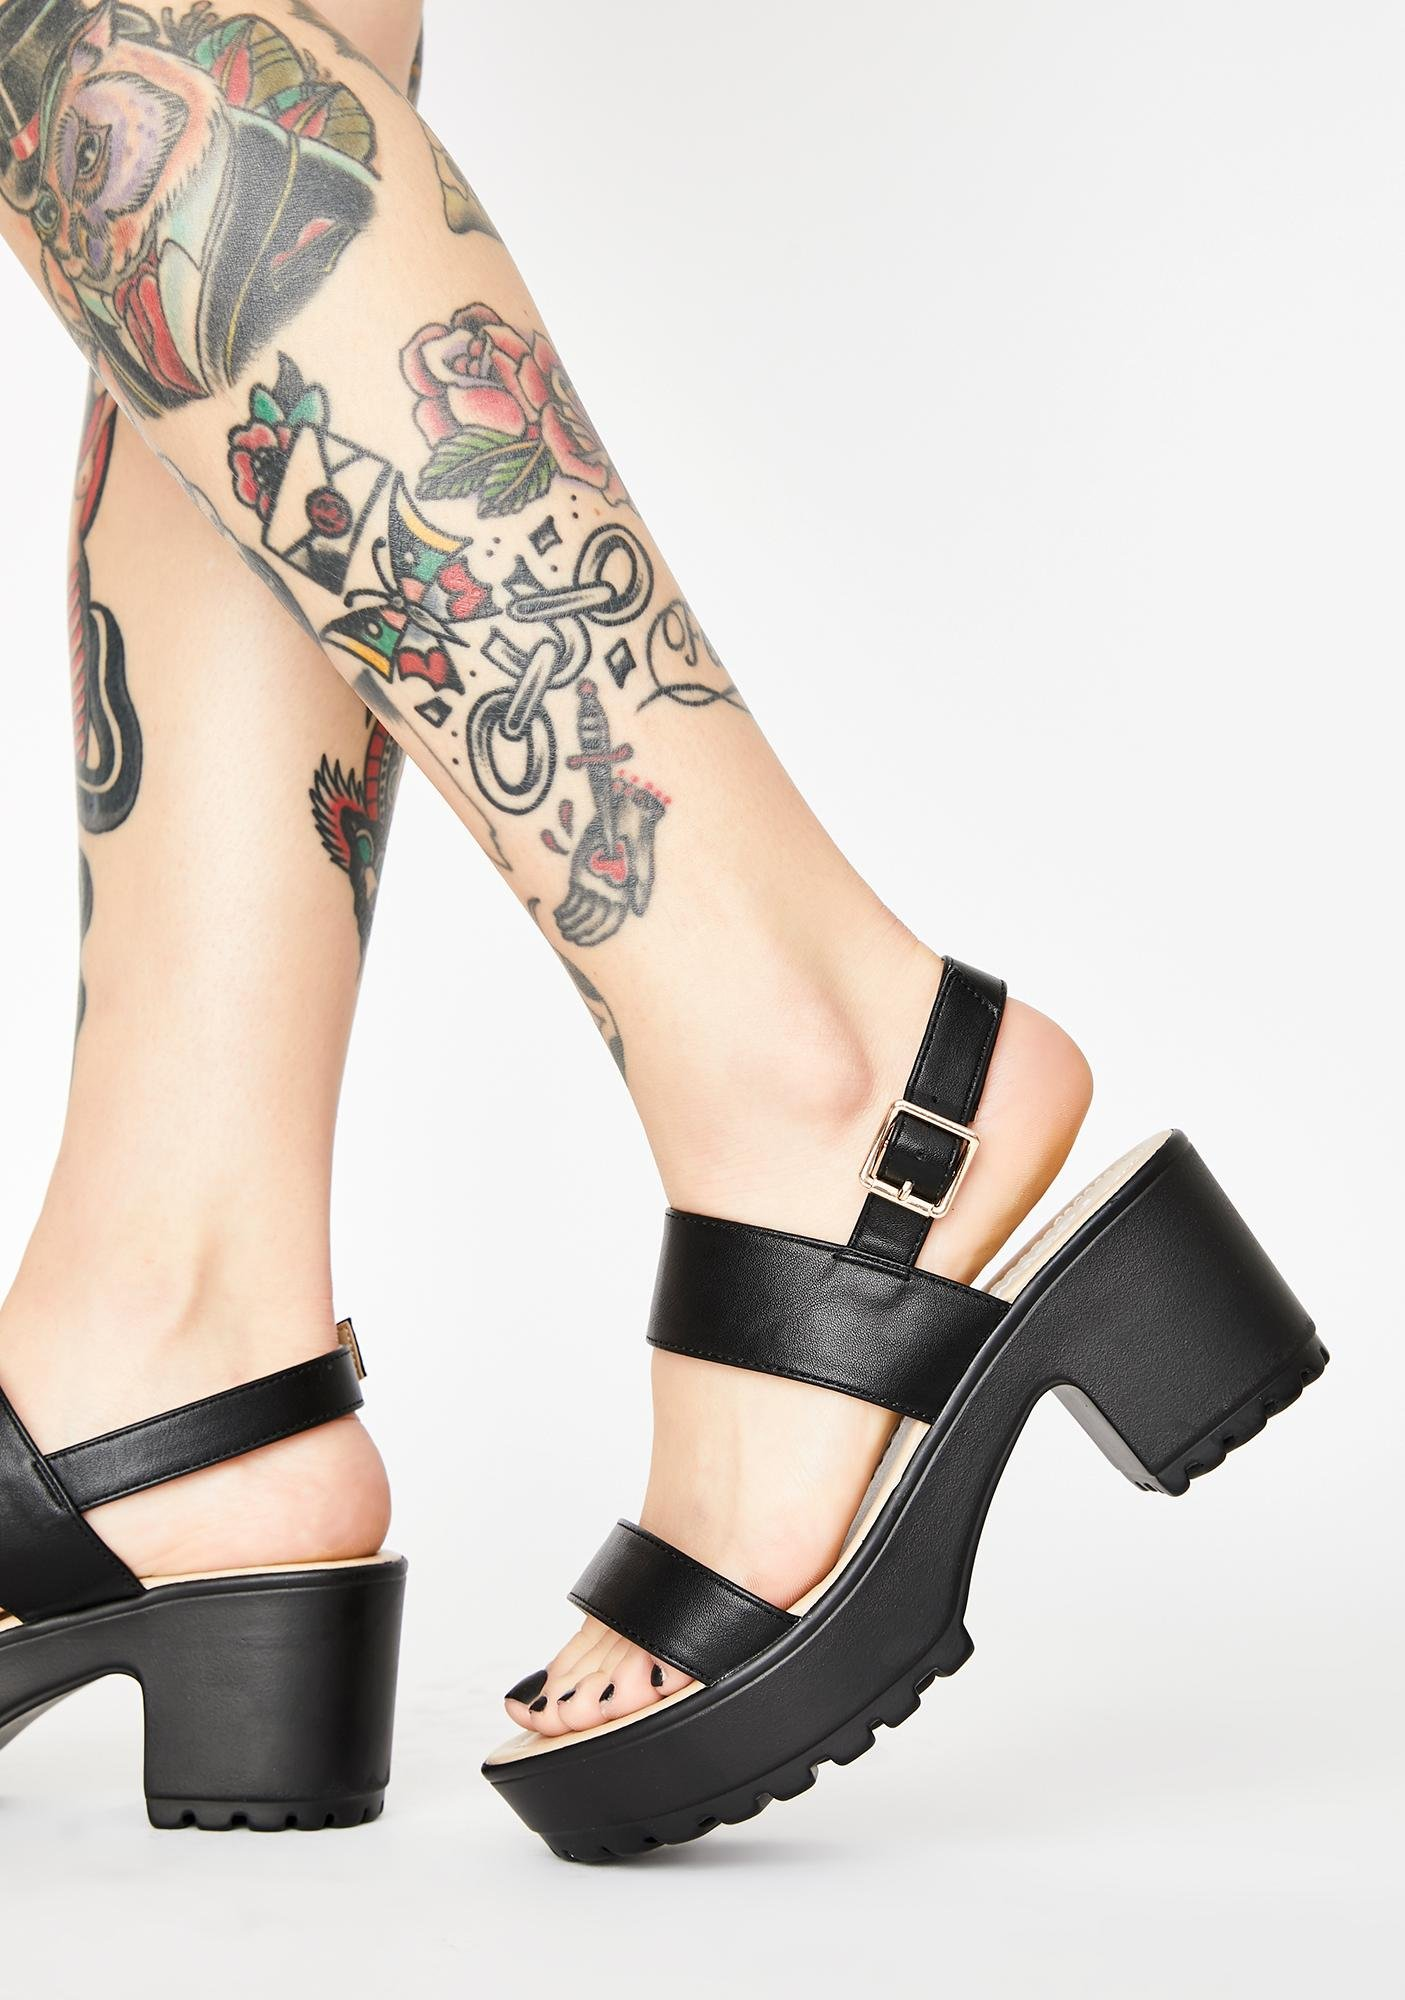 Koi Footwear Black Cleated Platform Sandals